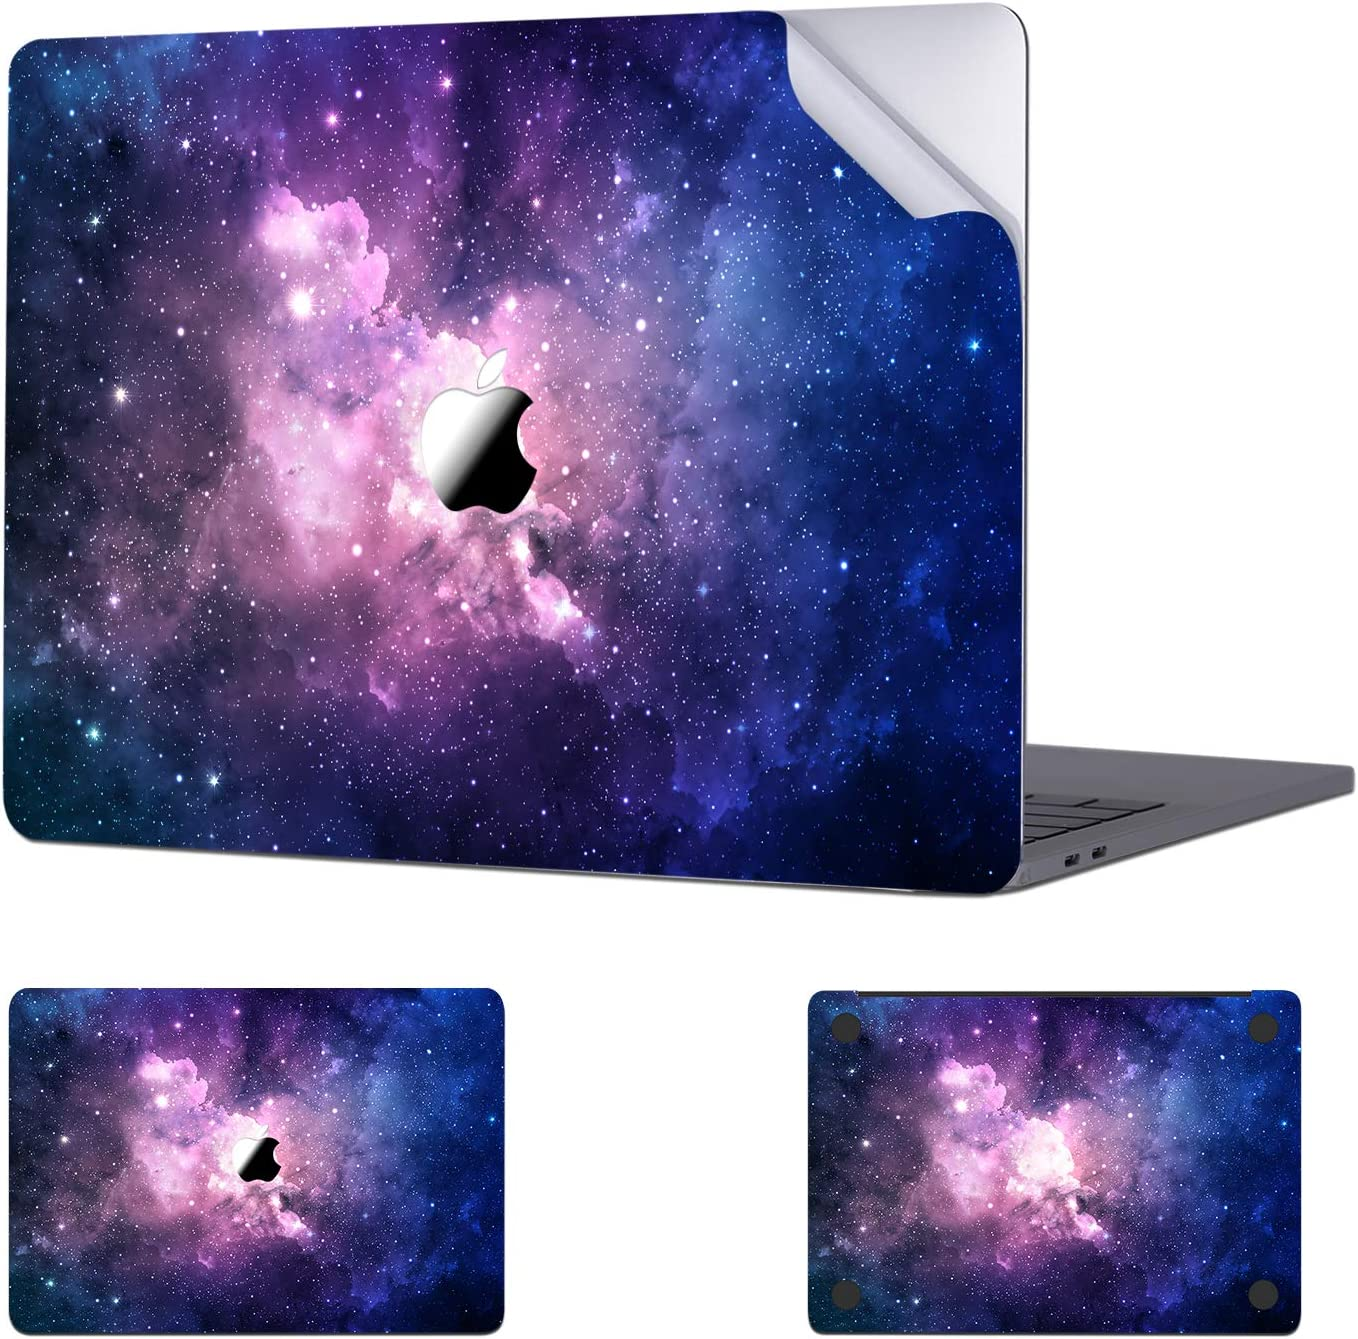 Digi-Tatoo MacBook Skin Decal Sticker Compatible with MacBook Air 13 inch 2020/2018 Release (Model A2337/A2179/A1932), Easy Apply Full Body Protective Vinyl Skin [Nebula]